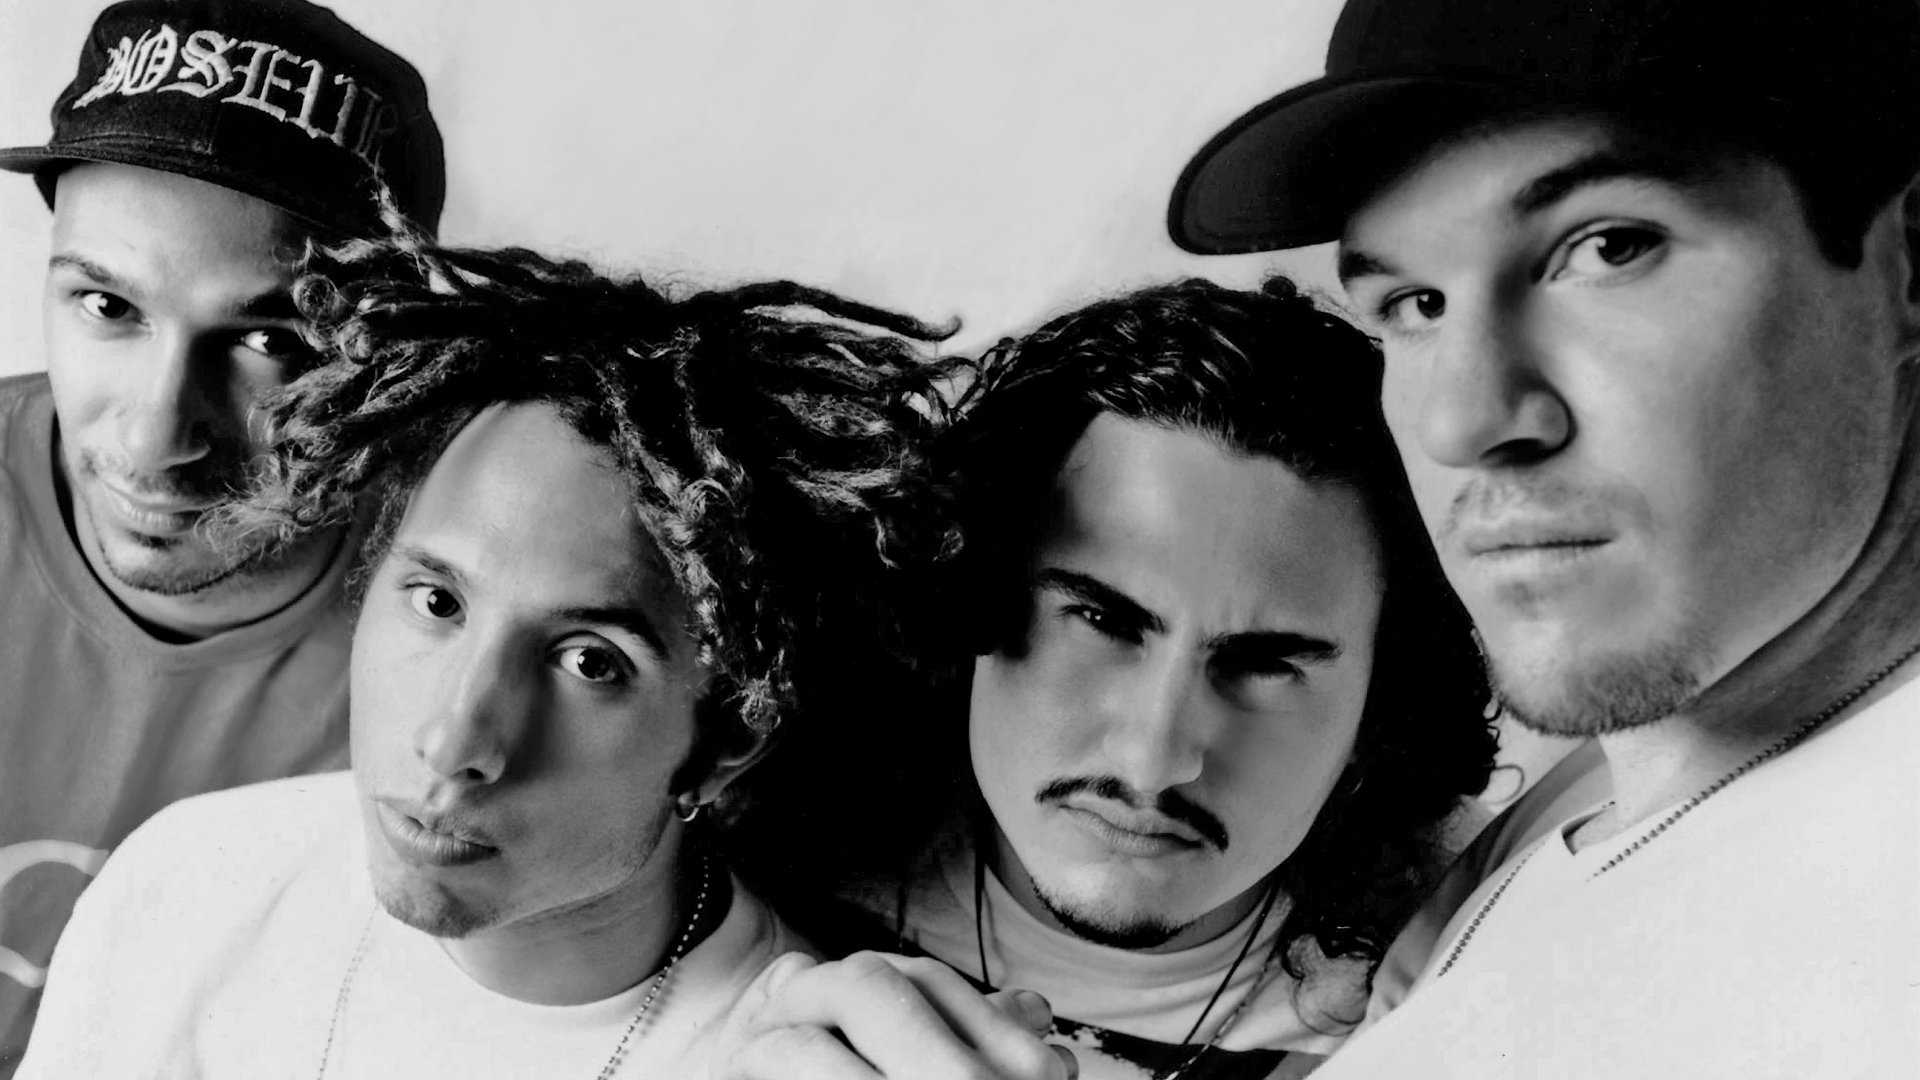 Il y a 20 ans Rage Against The Machine savait déjà pour Trump